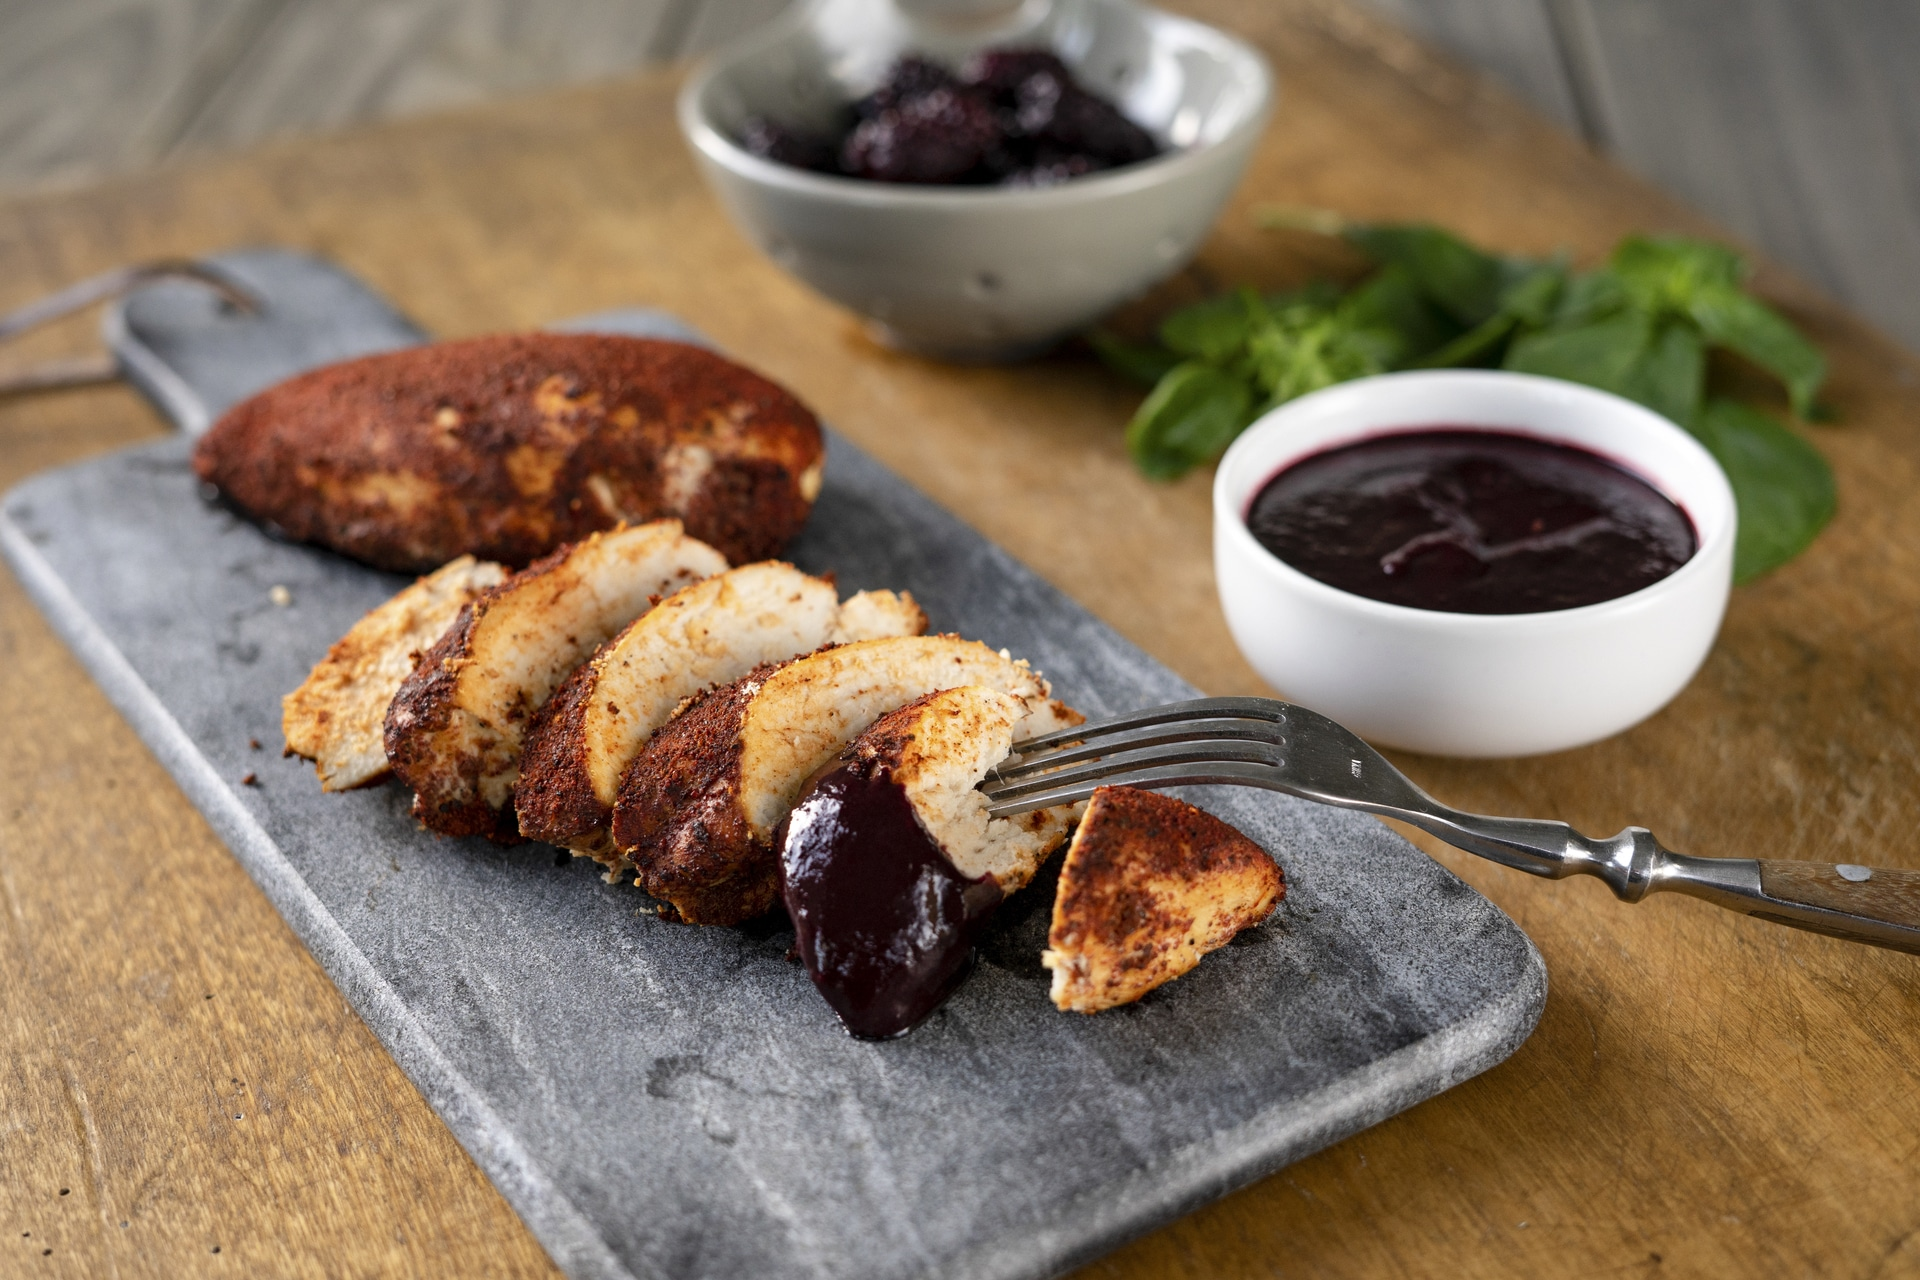 Smoked Chicken with Marionberry Sauce